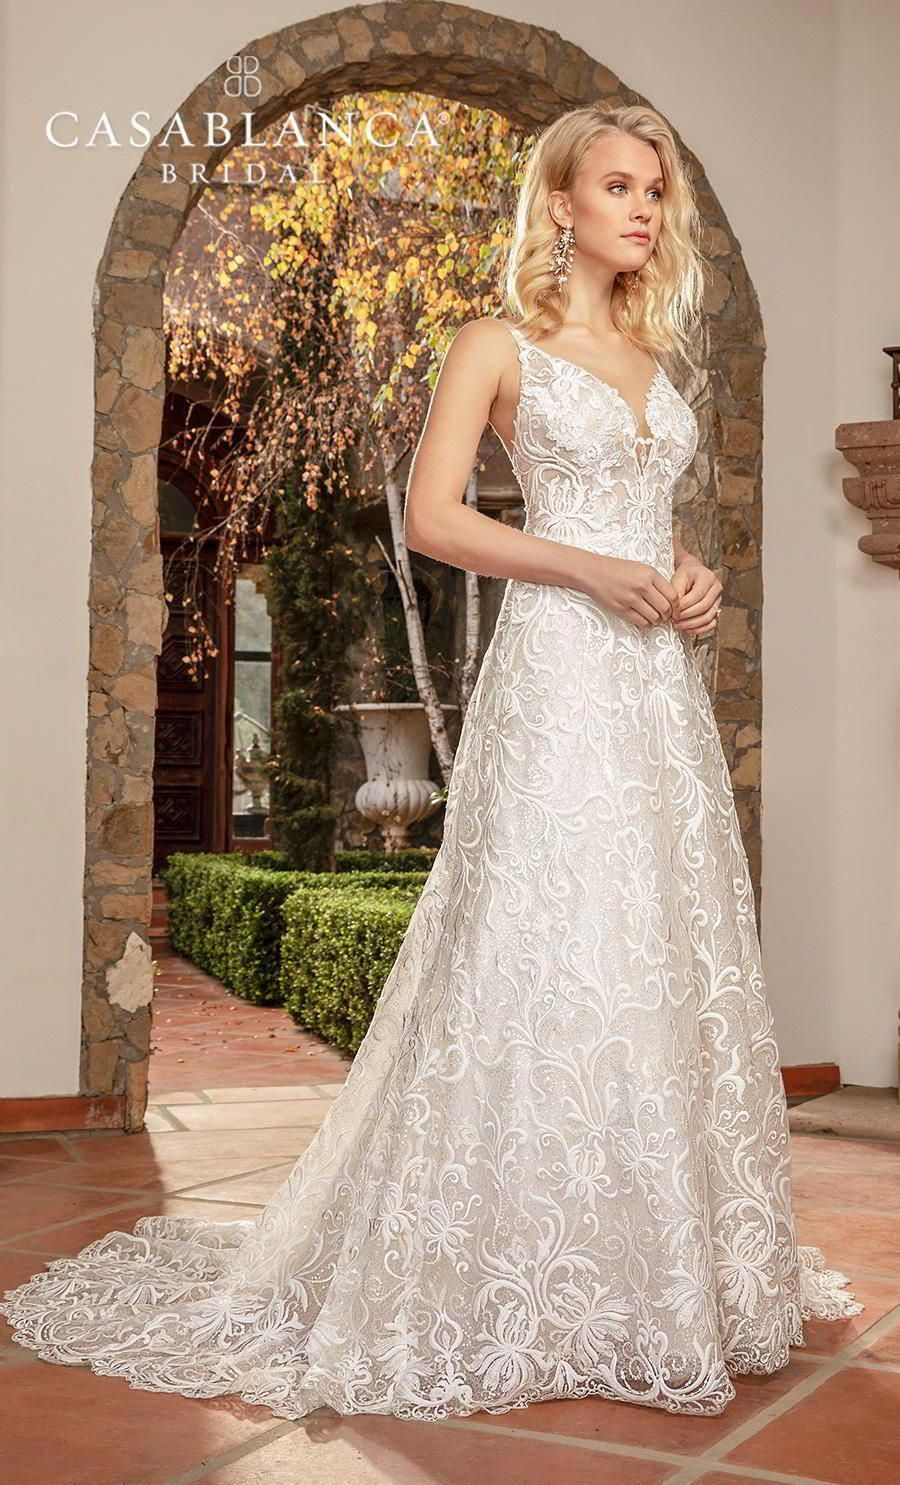 Casablanca Bridal Fall 2019 'Forever Yours' bridal